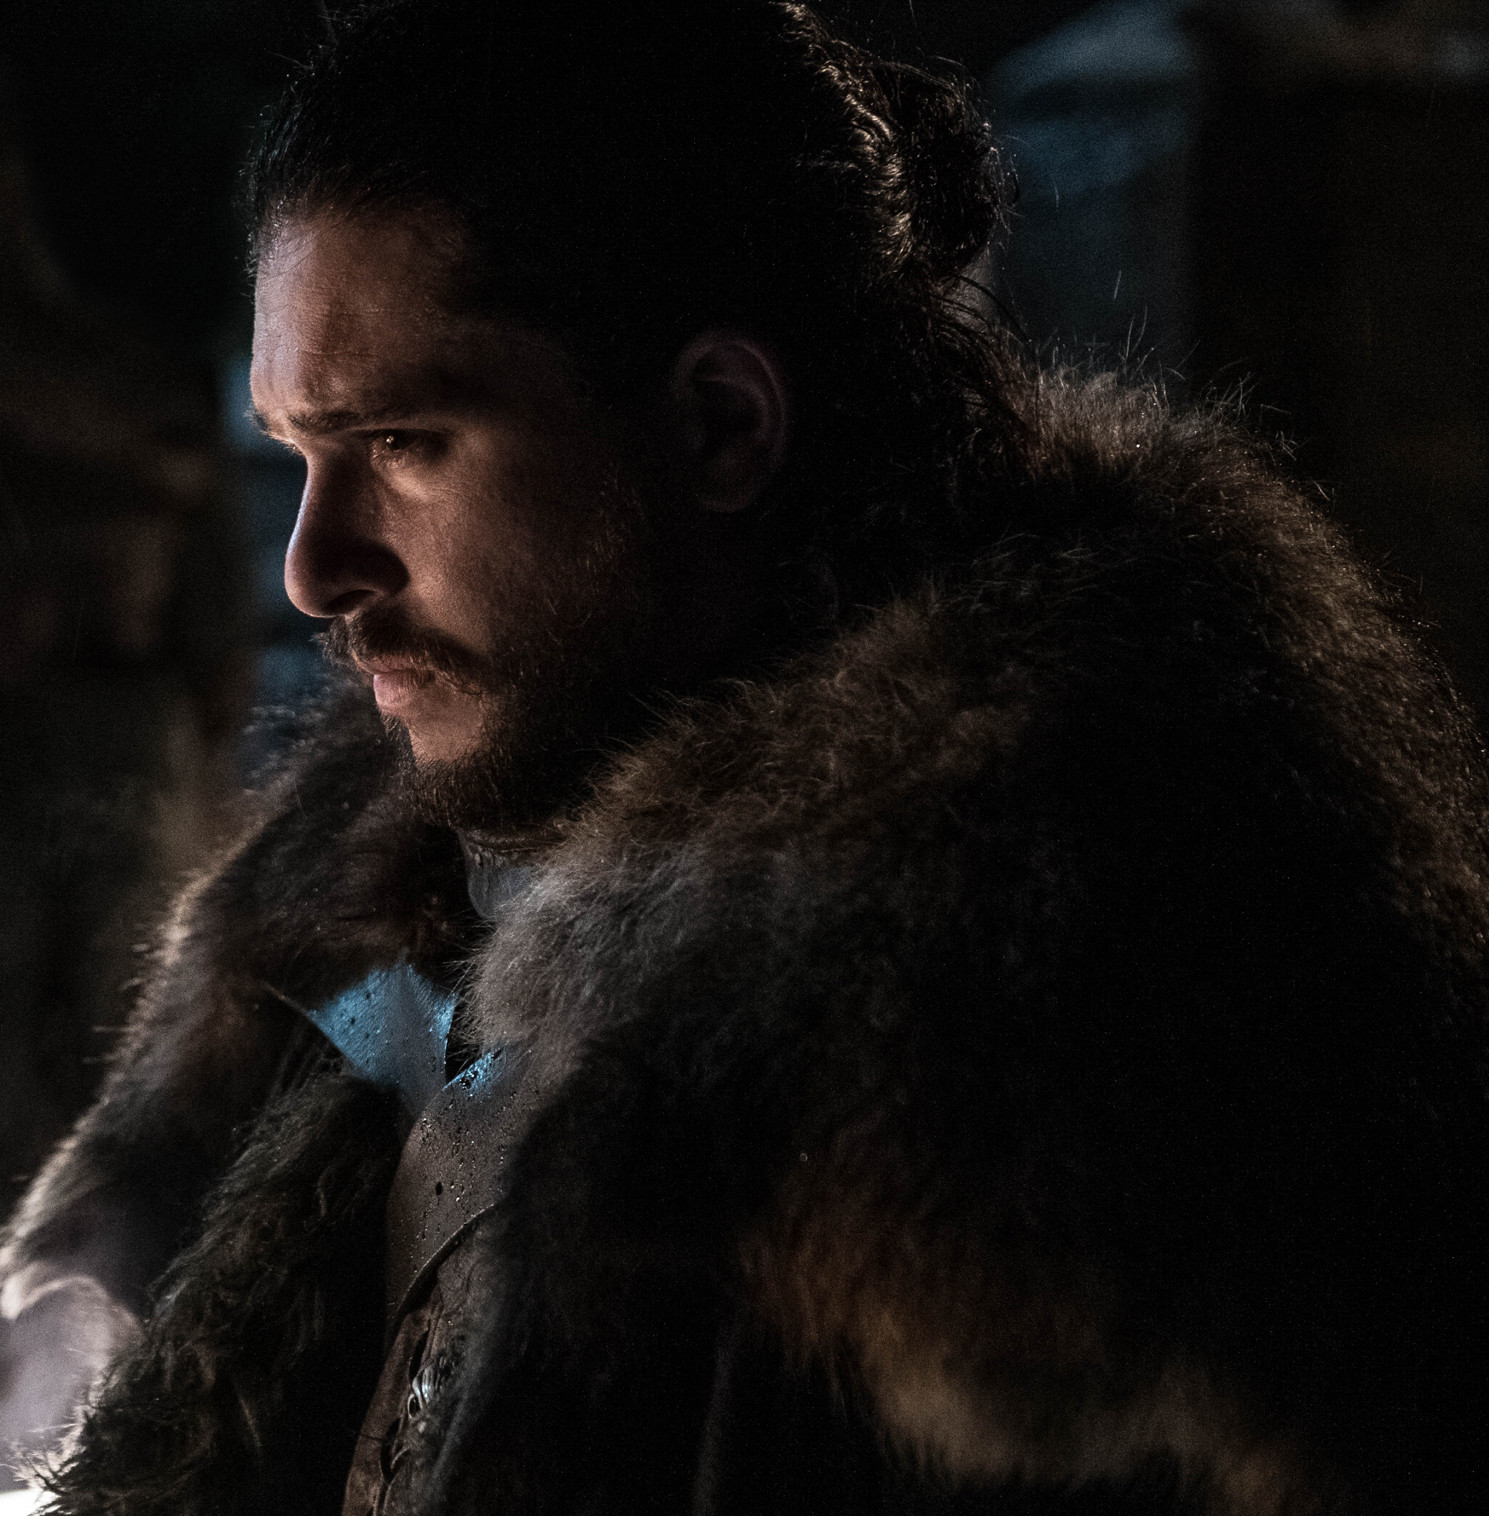 I'm Not Ready For 'Game Of Thrones' To End